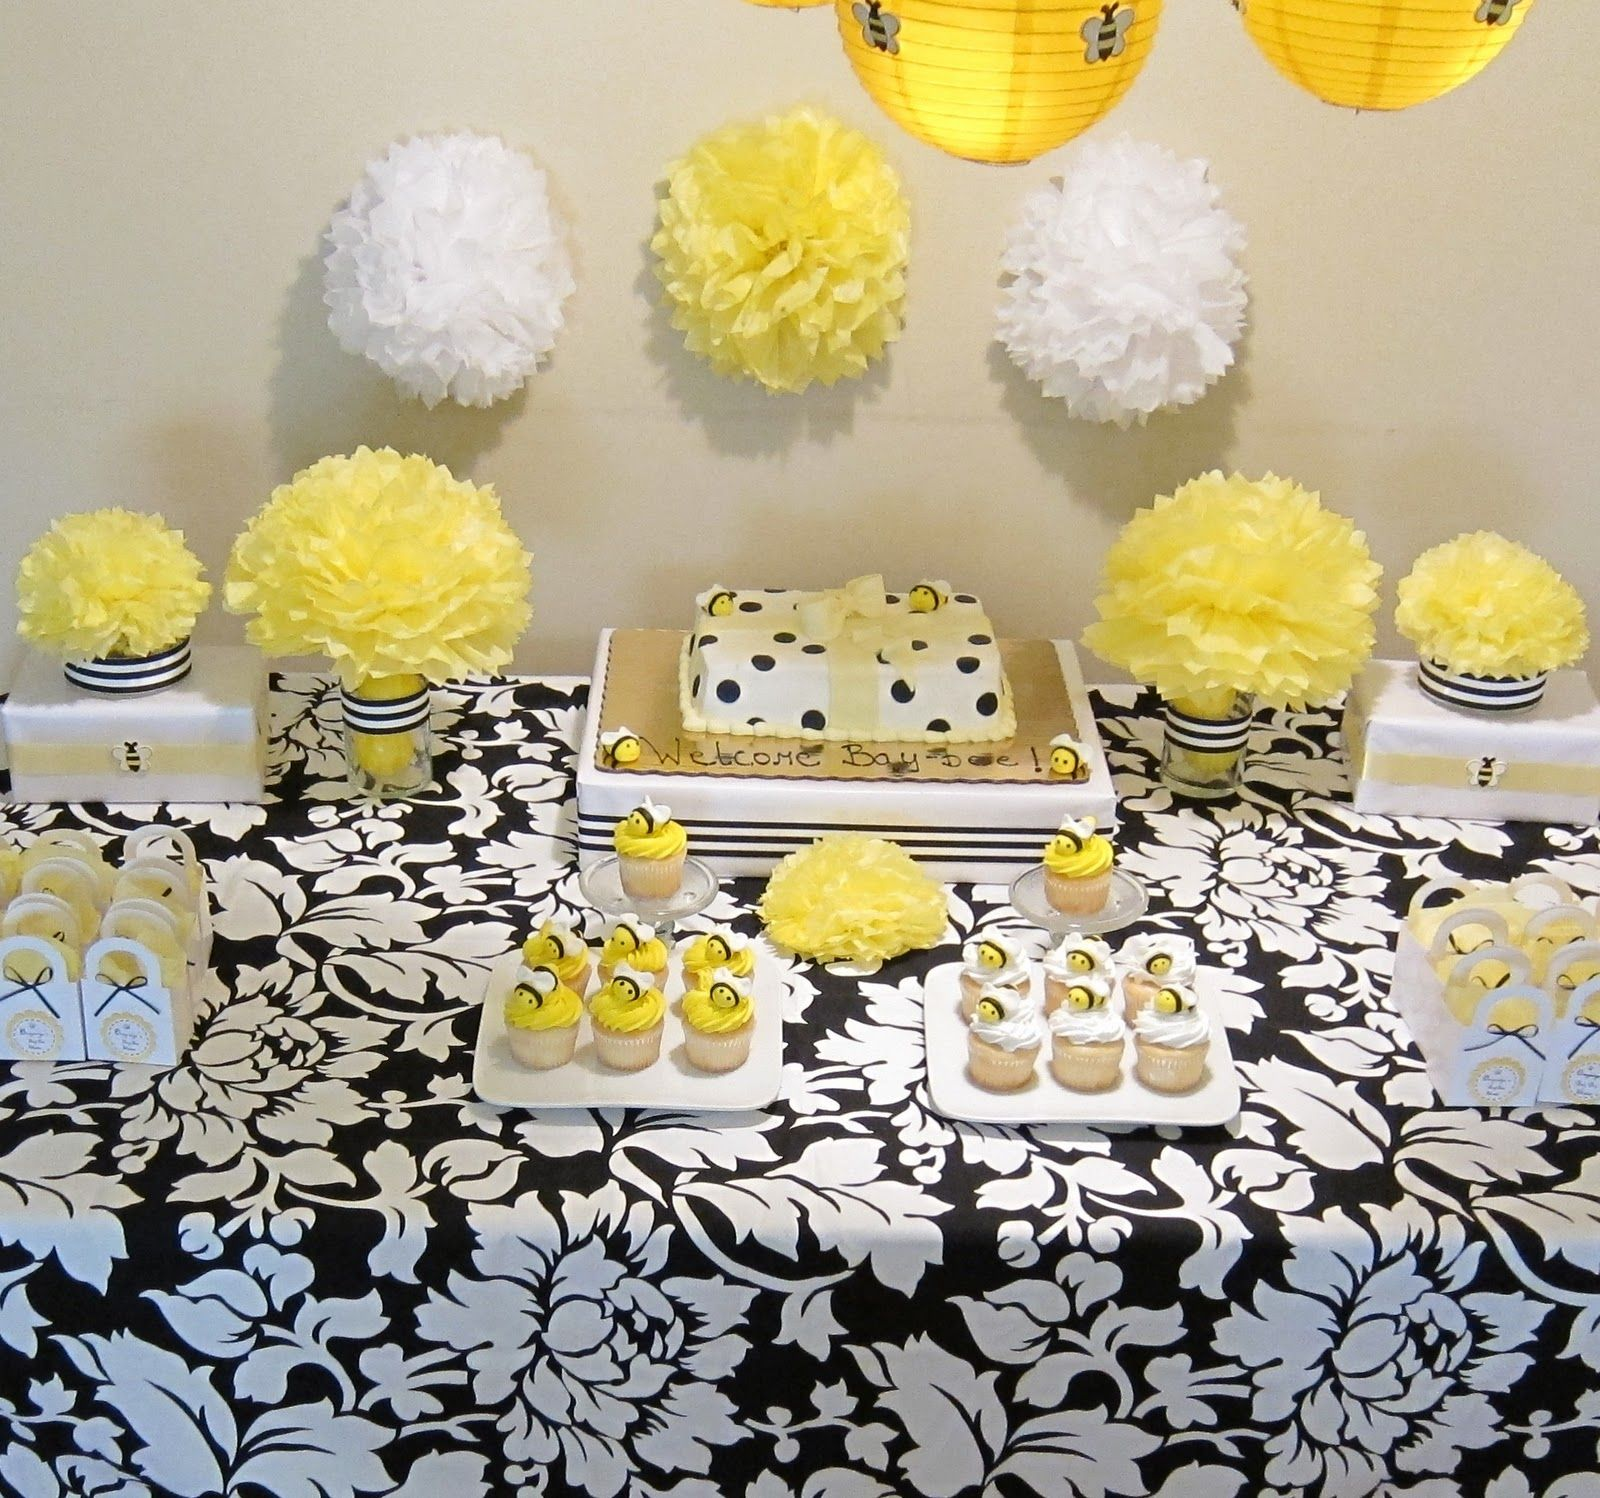 unique homemade baby shower invitation ideas%0A Bumble Bee Baby Shower Food Ideas Baby Invitations Tremendous bumble bee  invitations for a baby shower Bumble Bee Baby Shower Food Ideas